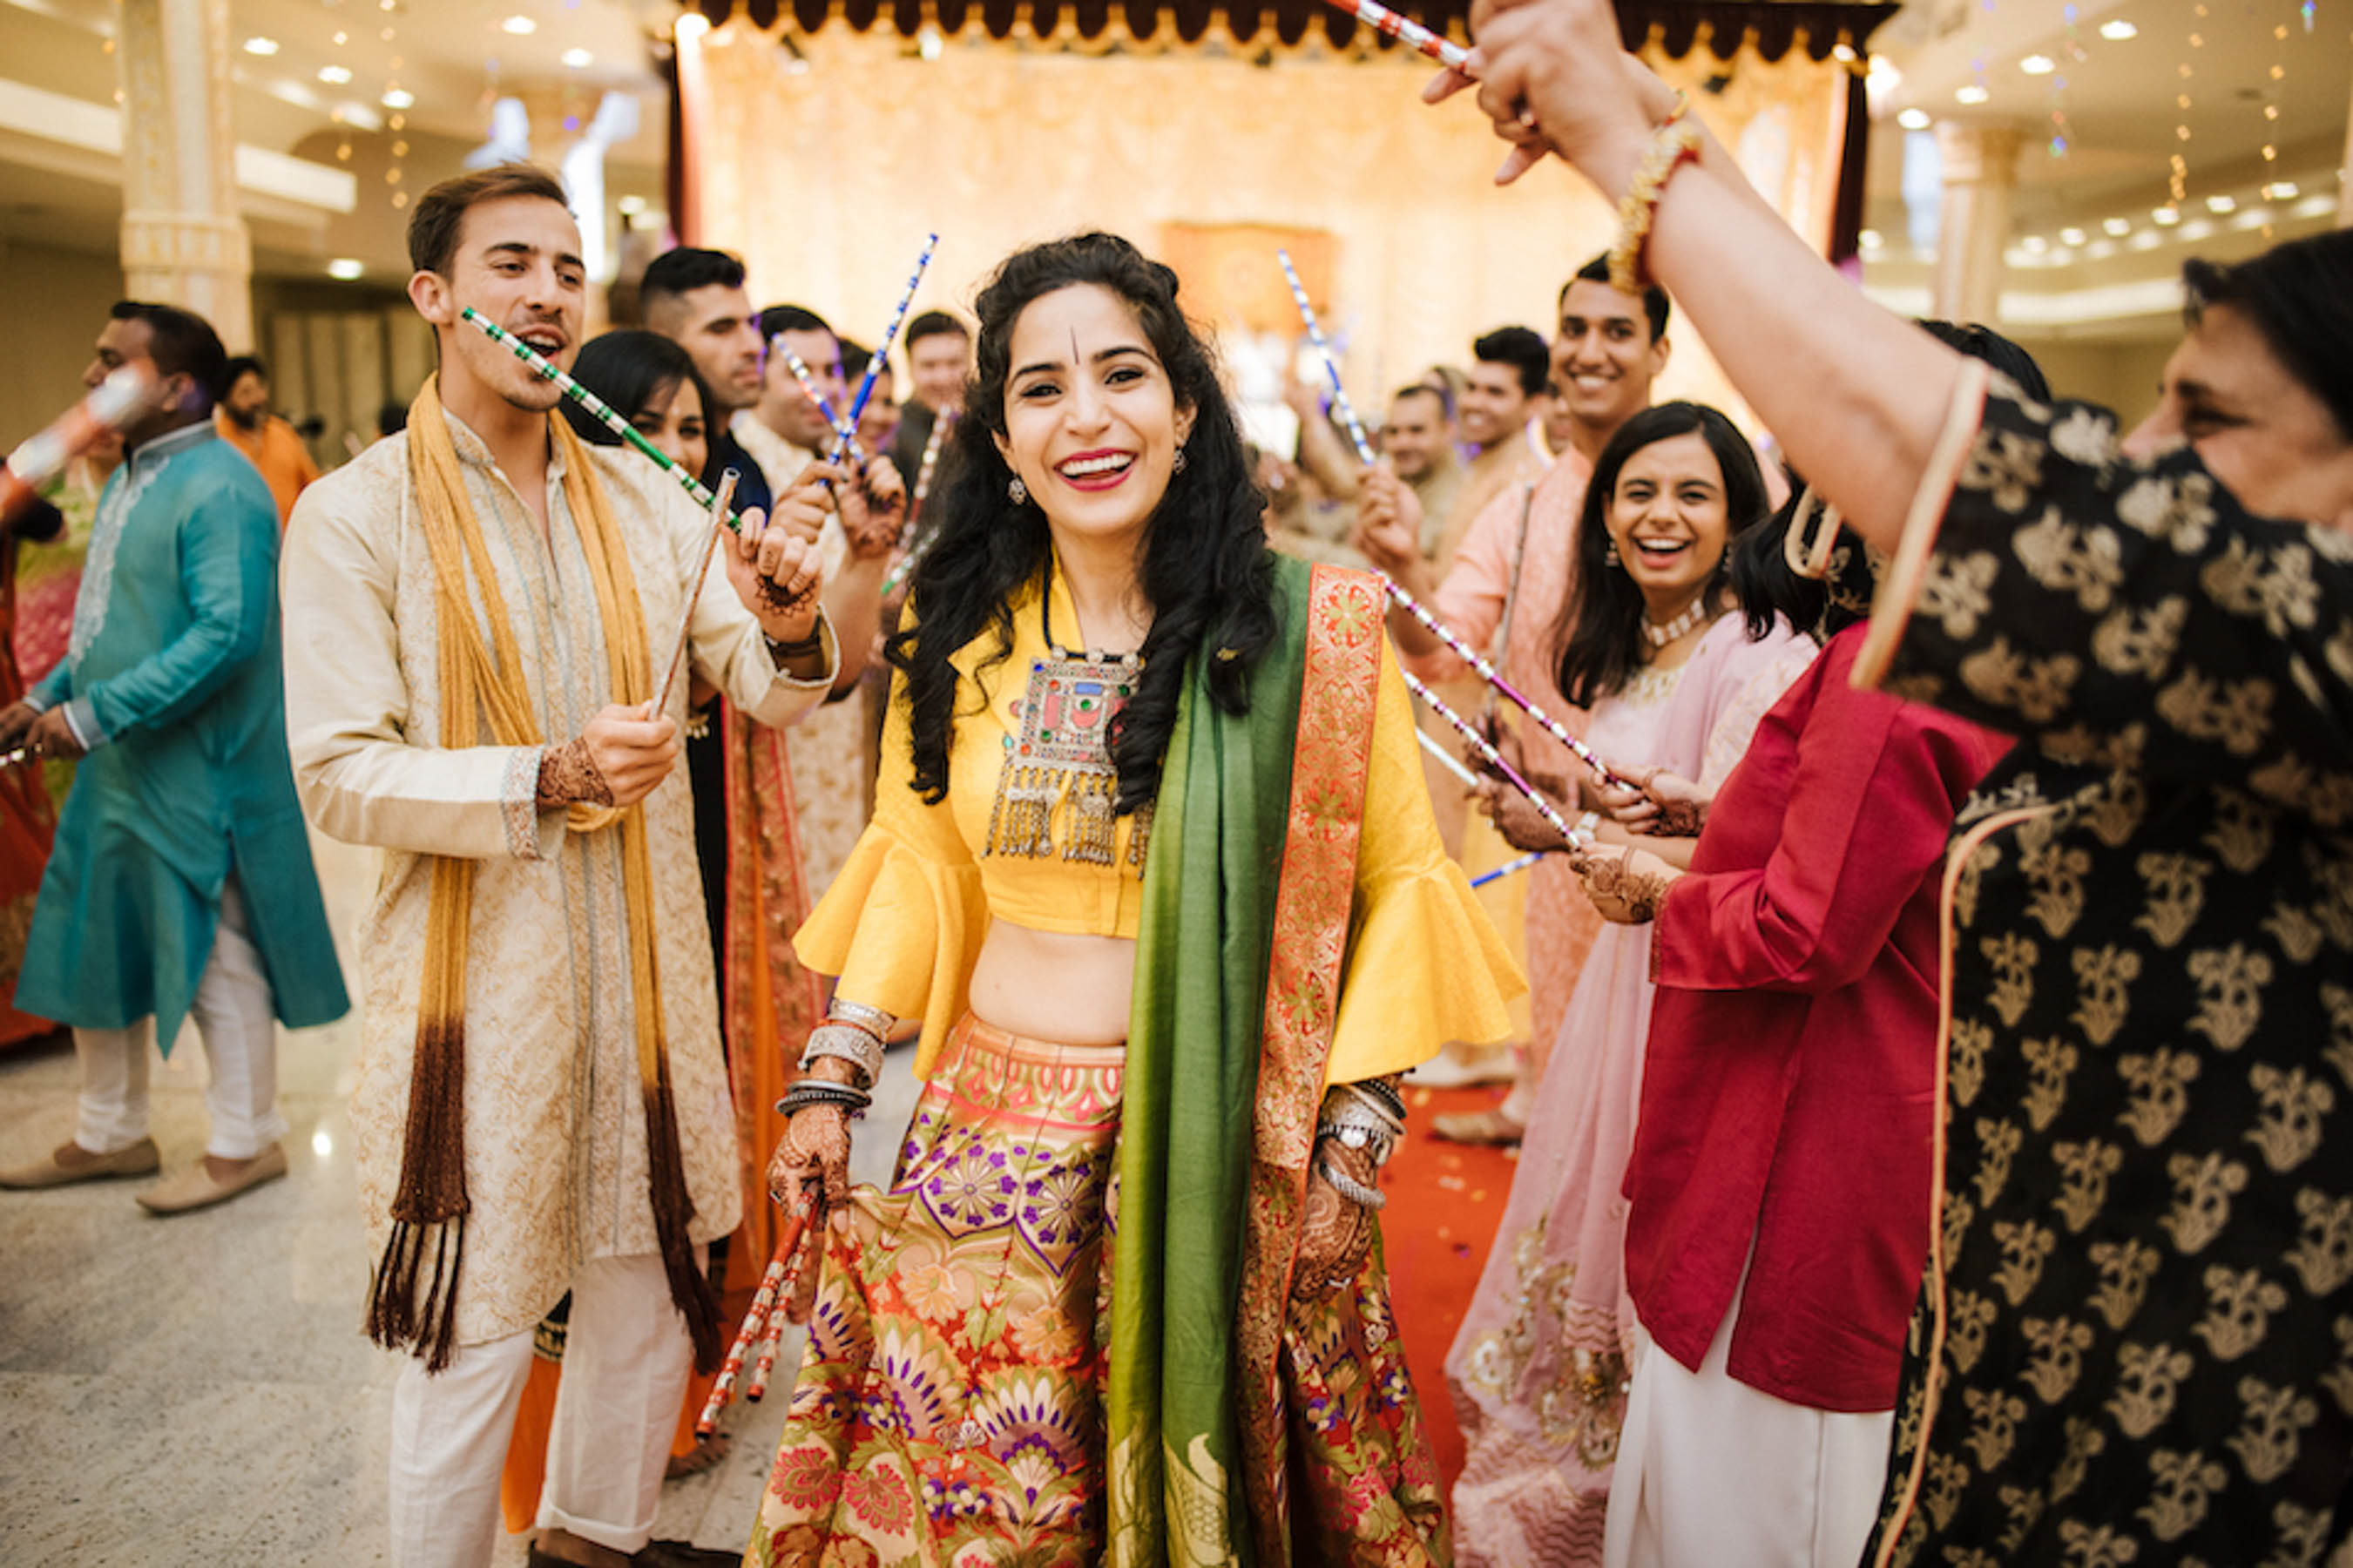 Nomeeta and Cheten's stylish Gujarati wedding took place at multiple wedding venues in Melbourne. This included a fabulous garba and dandia party.